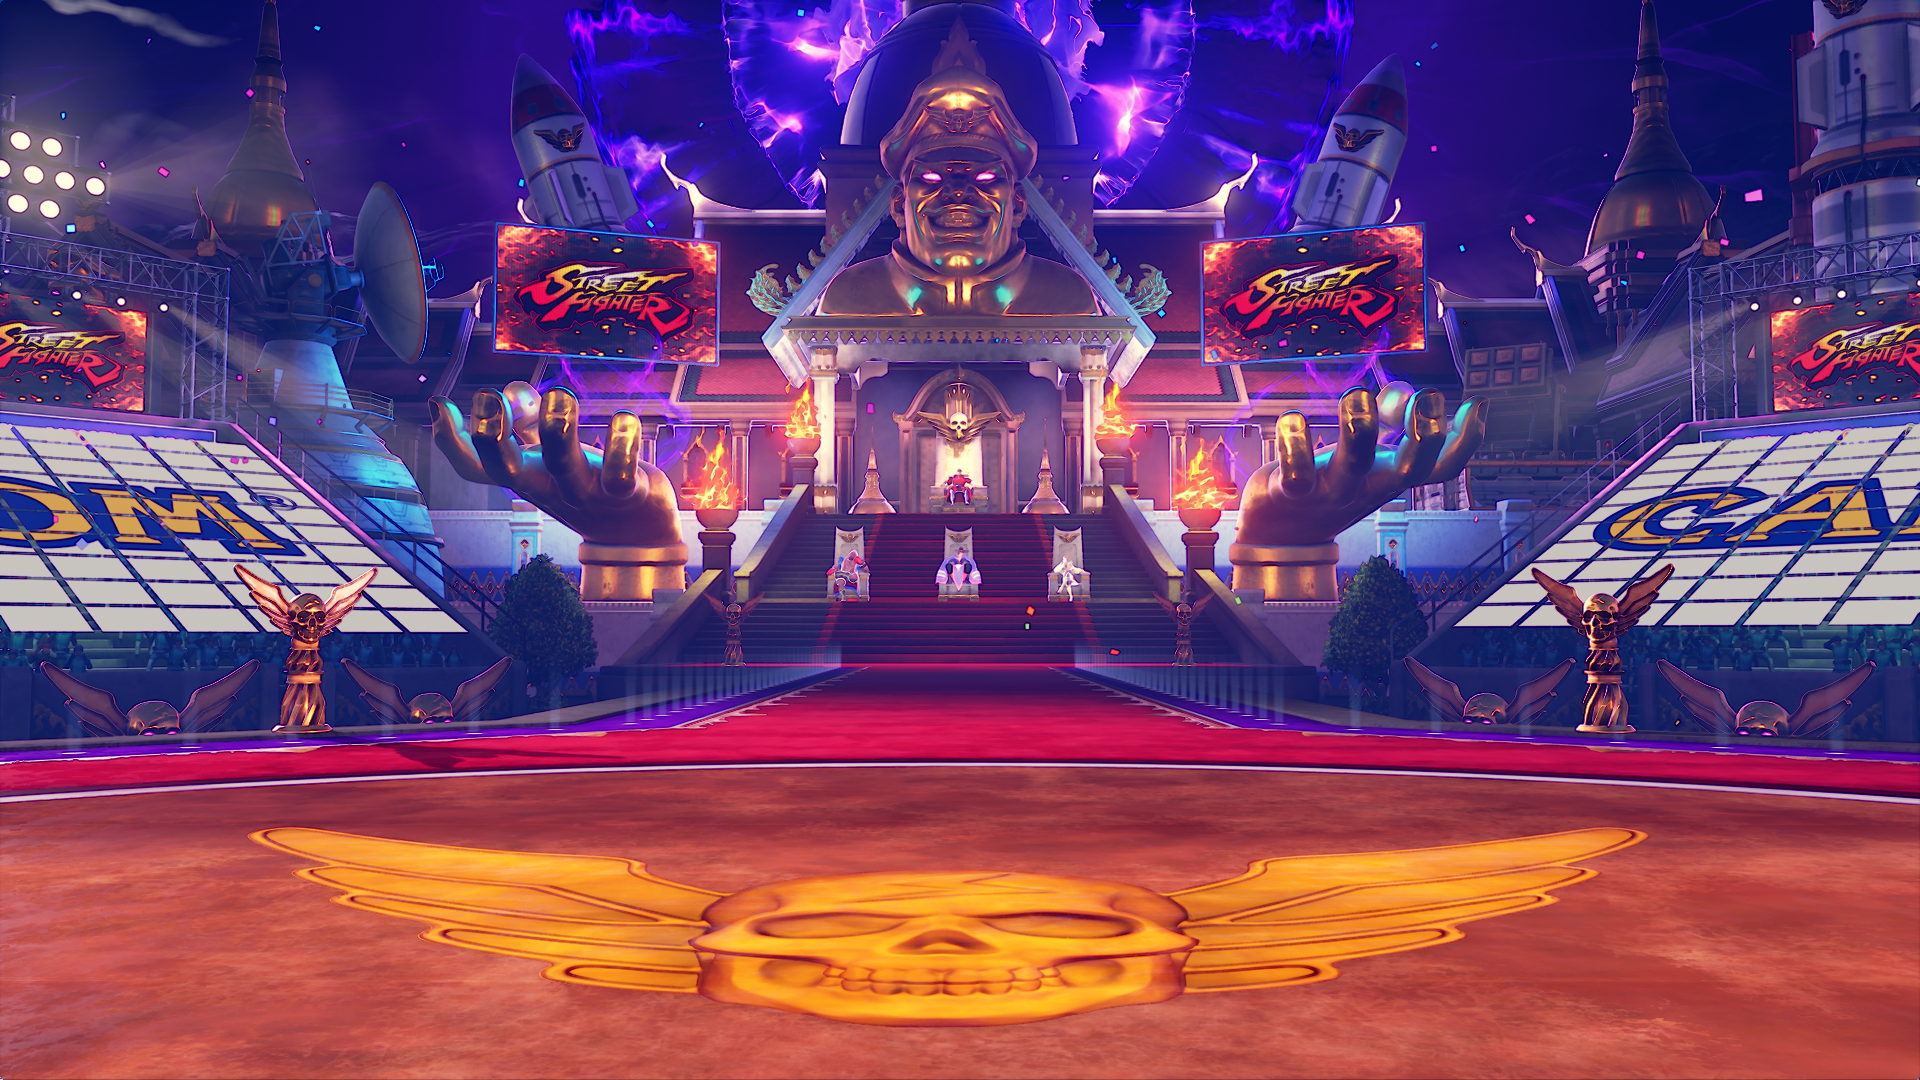 Cpt 2018 Dlc Brings All New Costumes And Dictator Themed Stage To